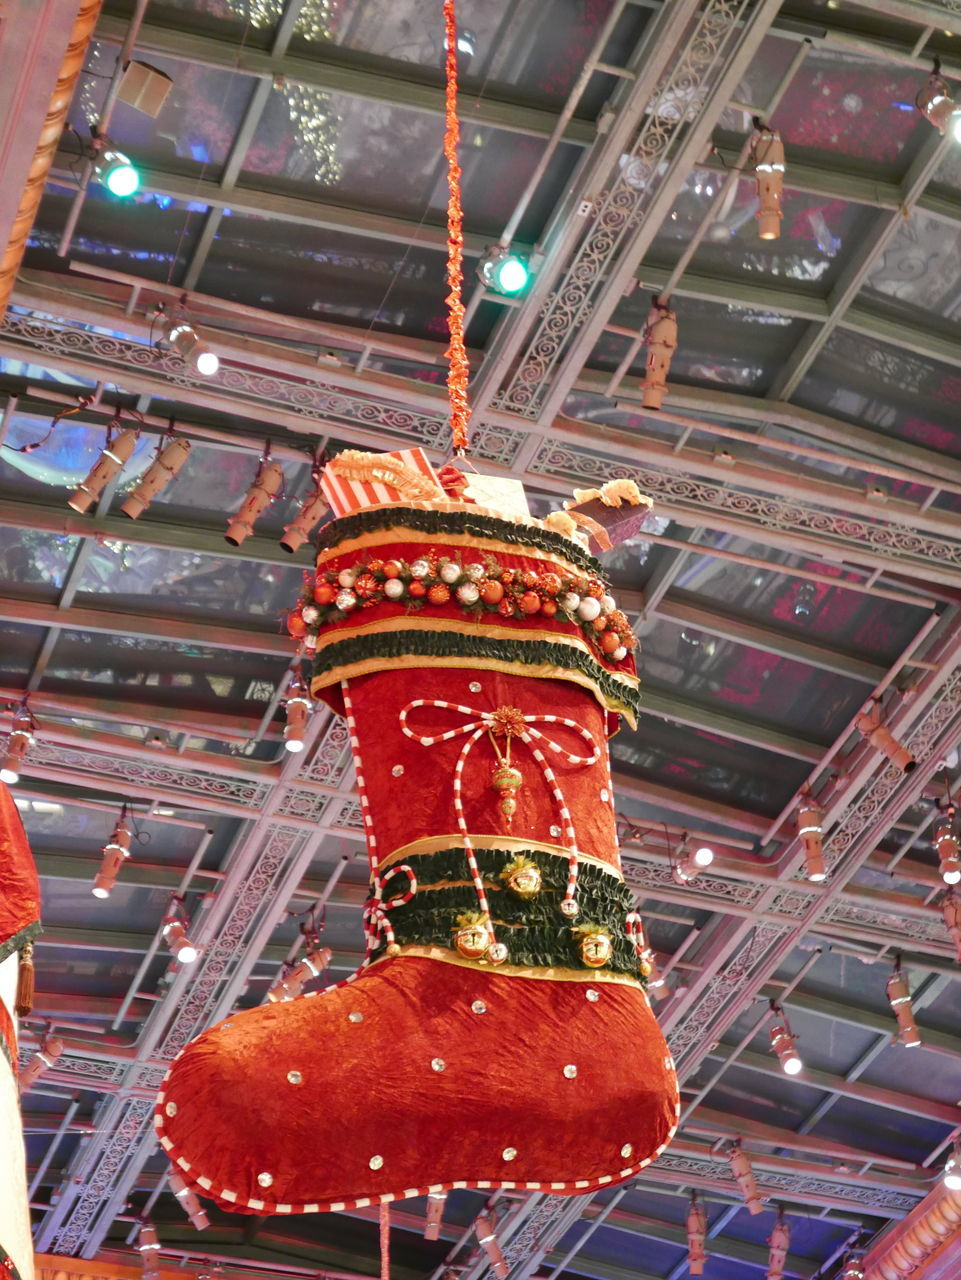 hanging, low angle view, cultures, indoors, chinese lantern, no people, celebration, lantern, illuminated, roof, red, chinese new year, close-up, day